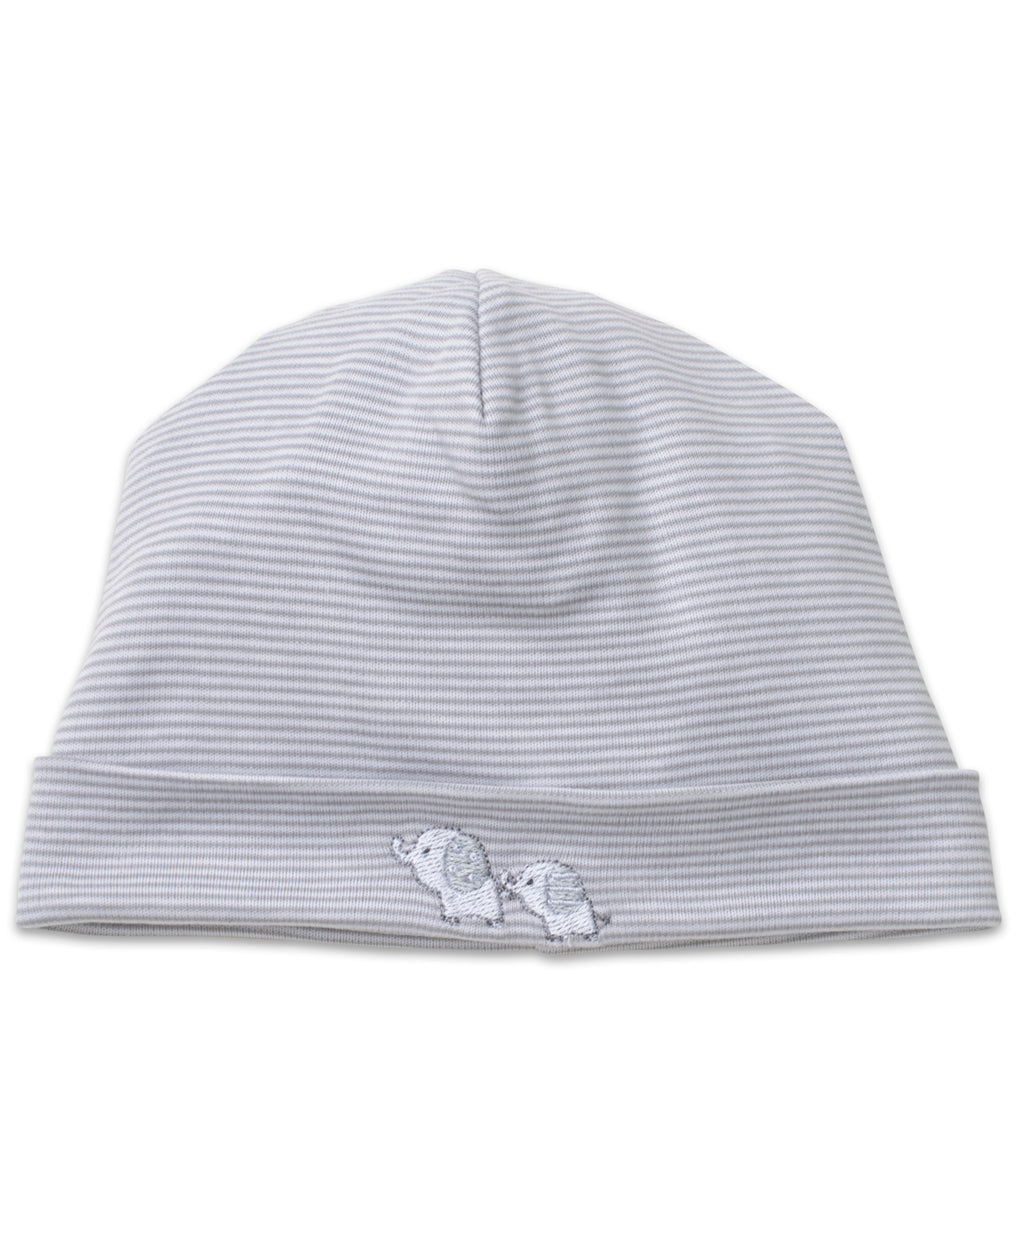 Baby Trunks Silver Stripe Hat